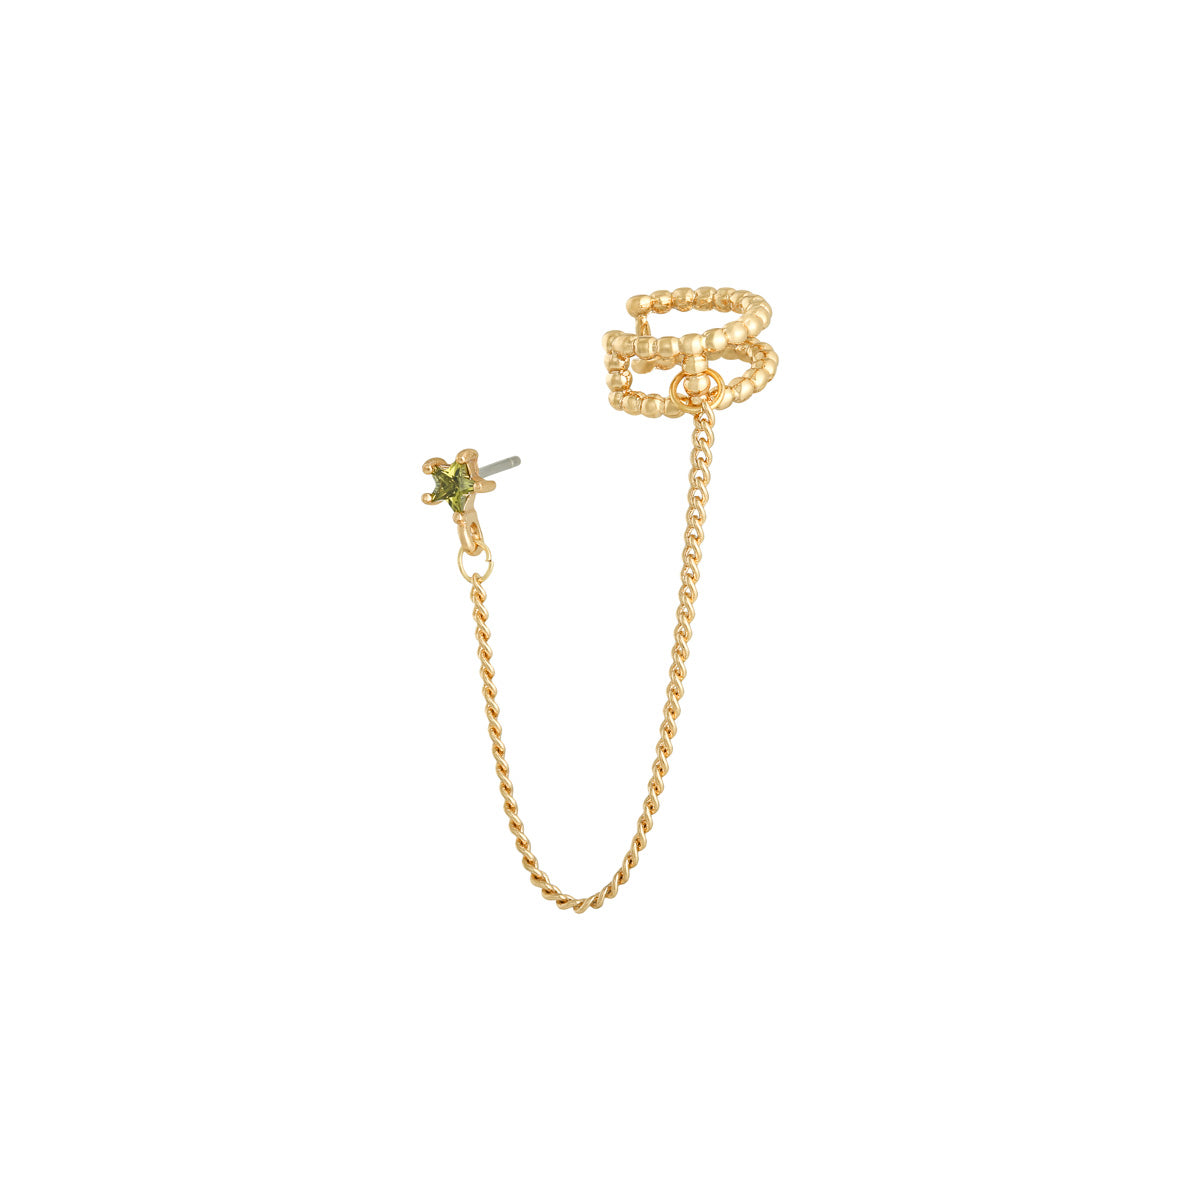 Green Stone Chain Ear cuff - Gold